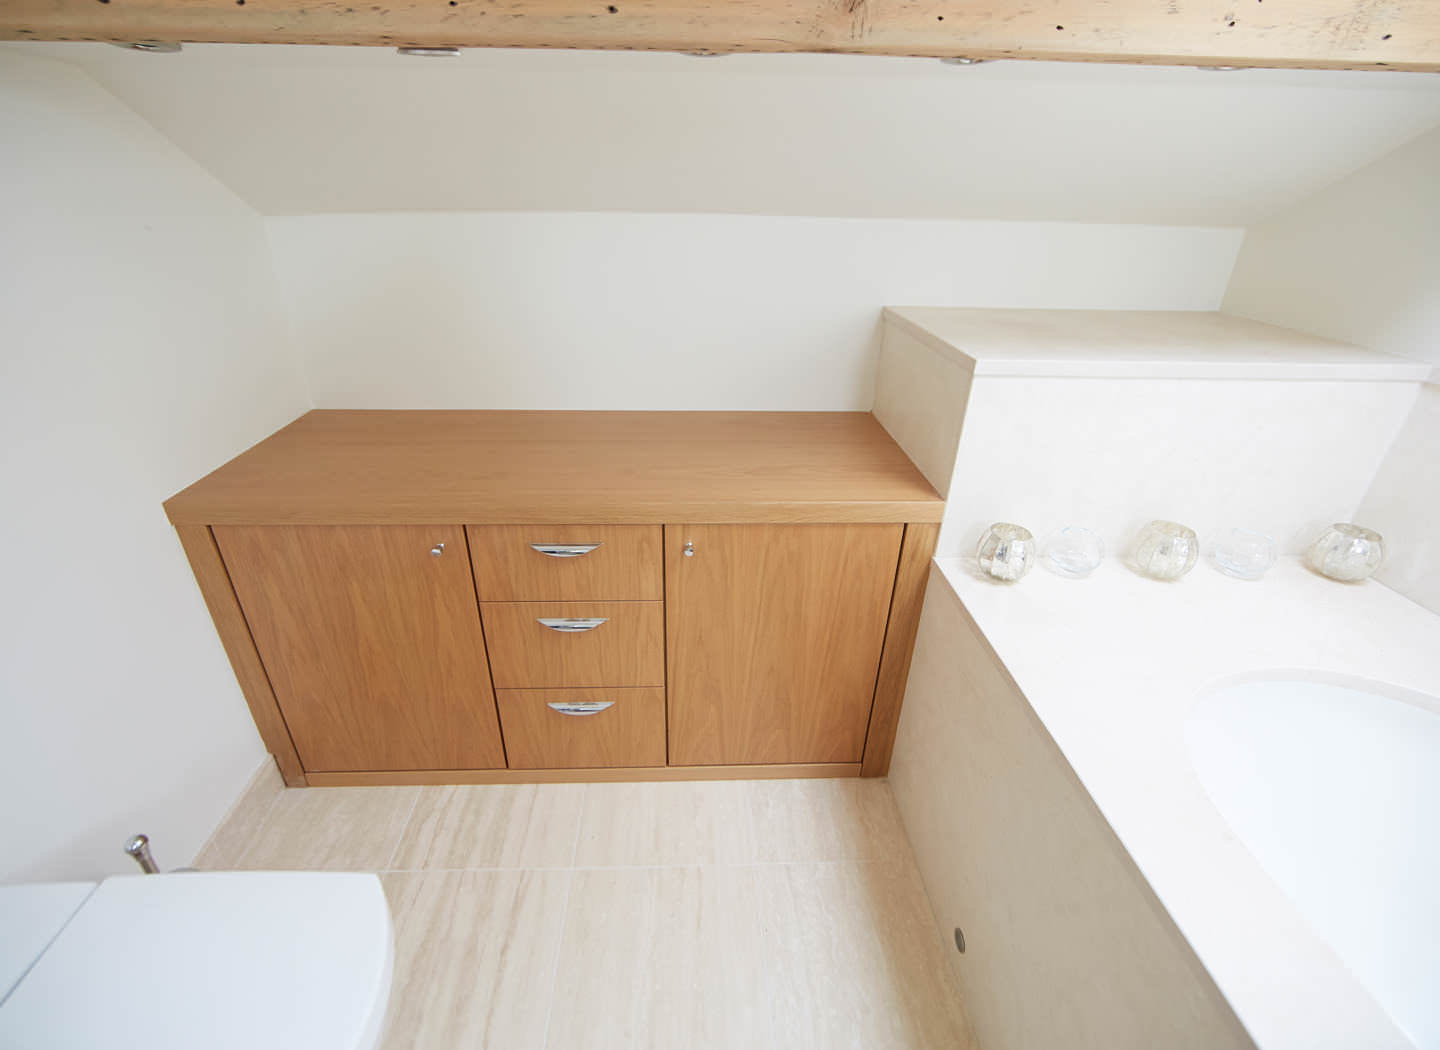 Case study showing fitted bathroom cabinets in loft conversion